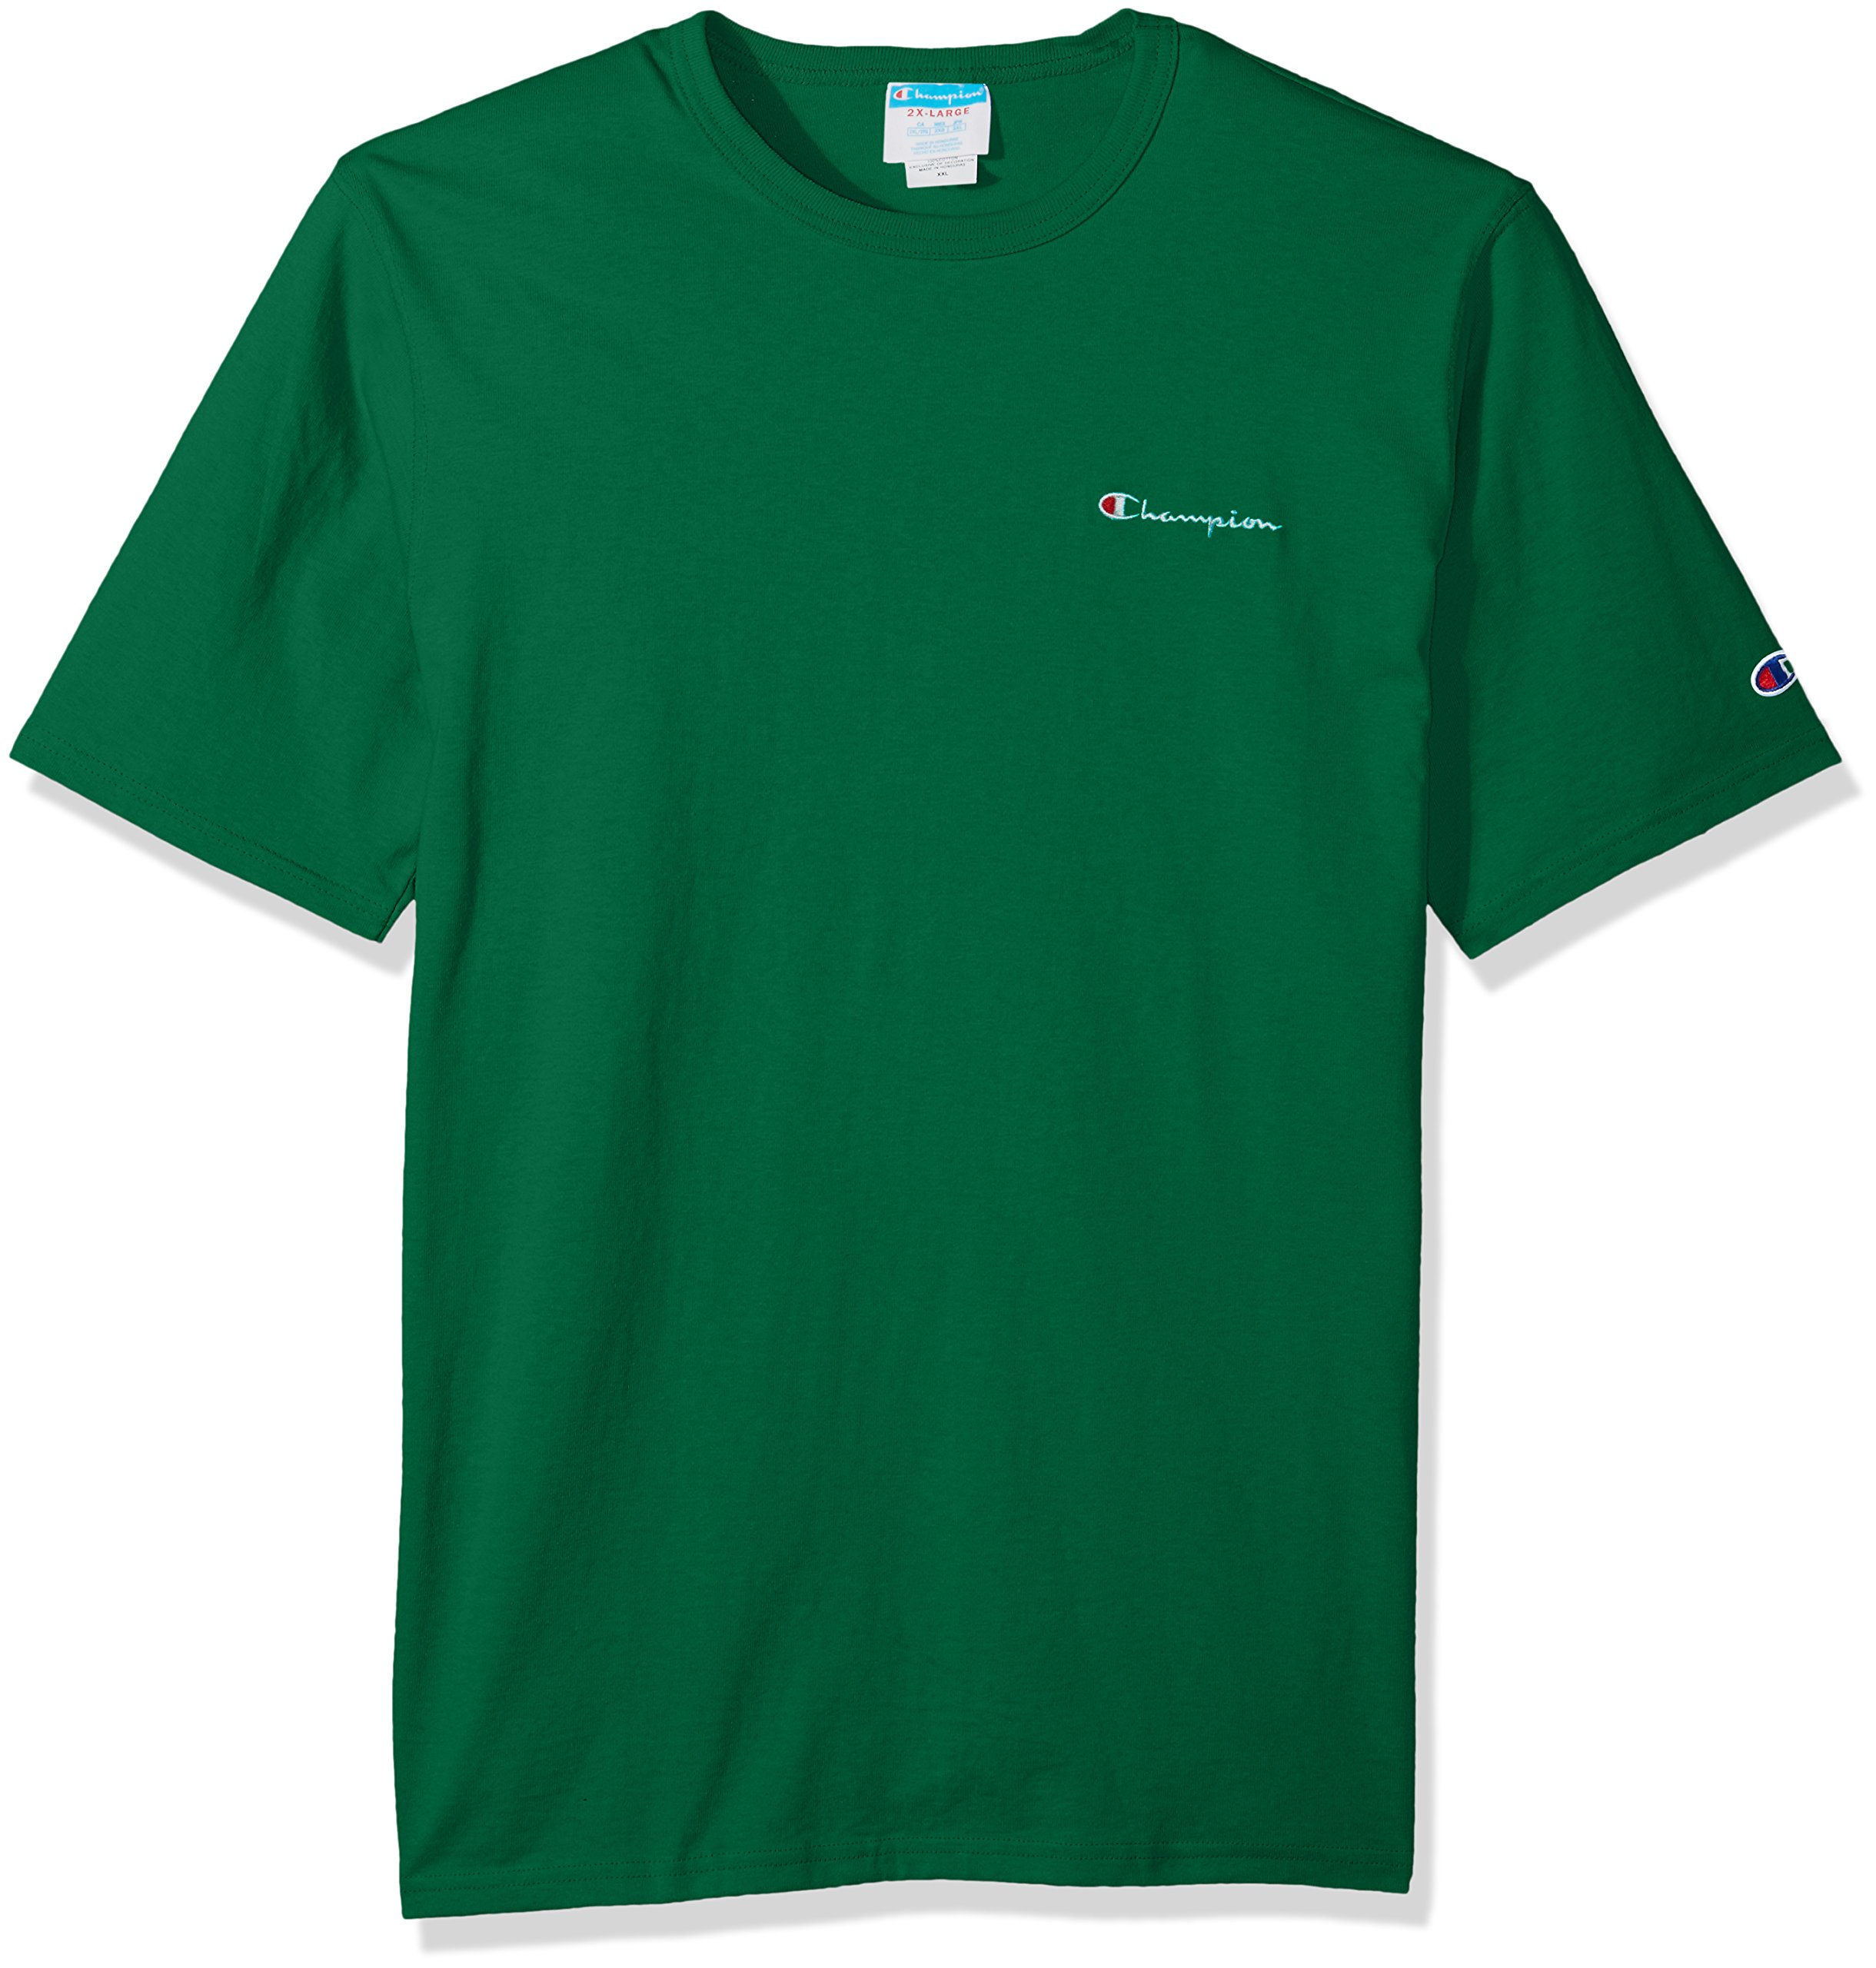 Champion LIFE Men's Heritage Tee, Kelly Green Script Embroidery, XL